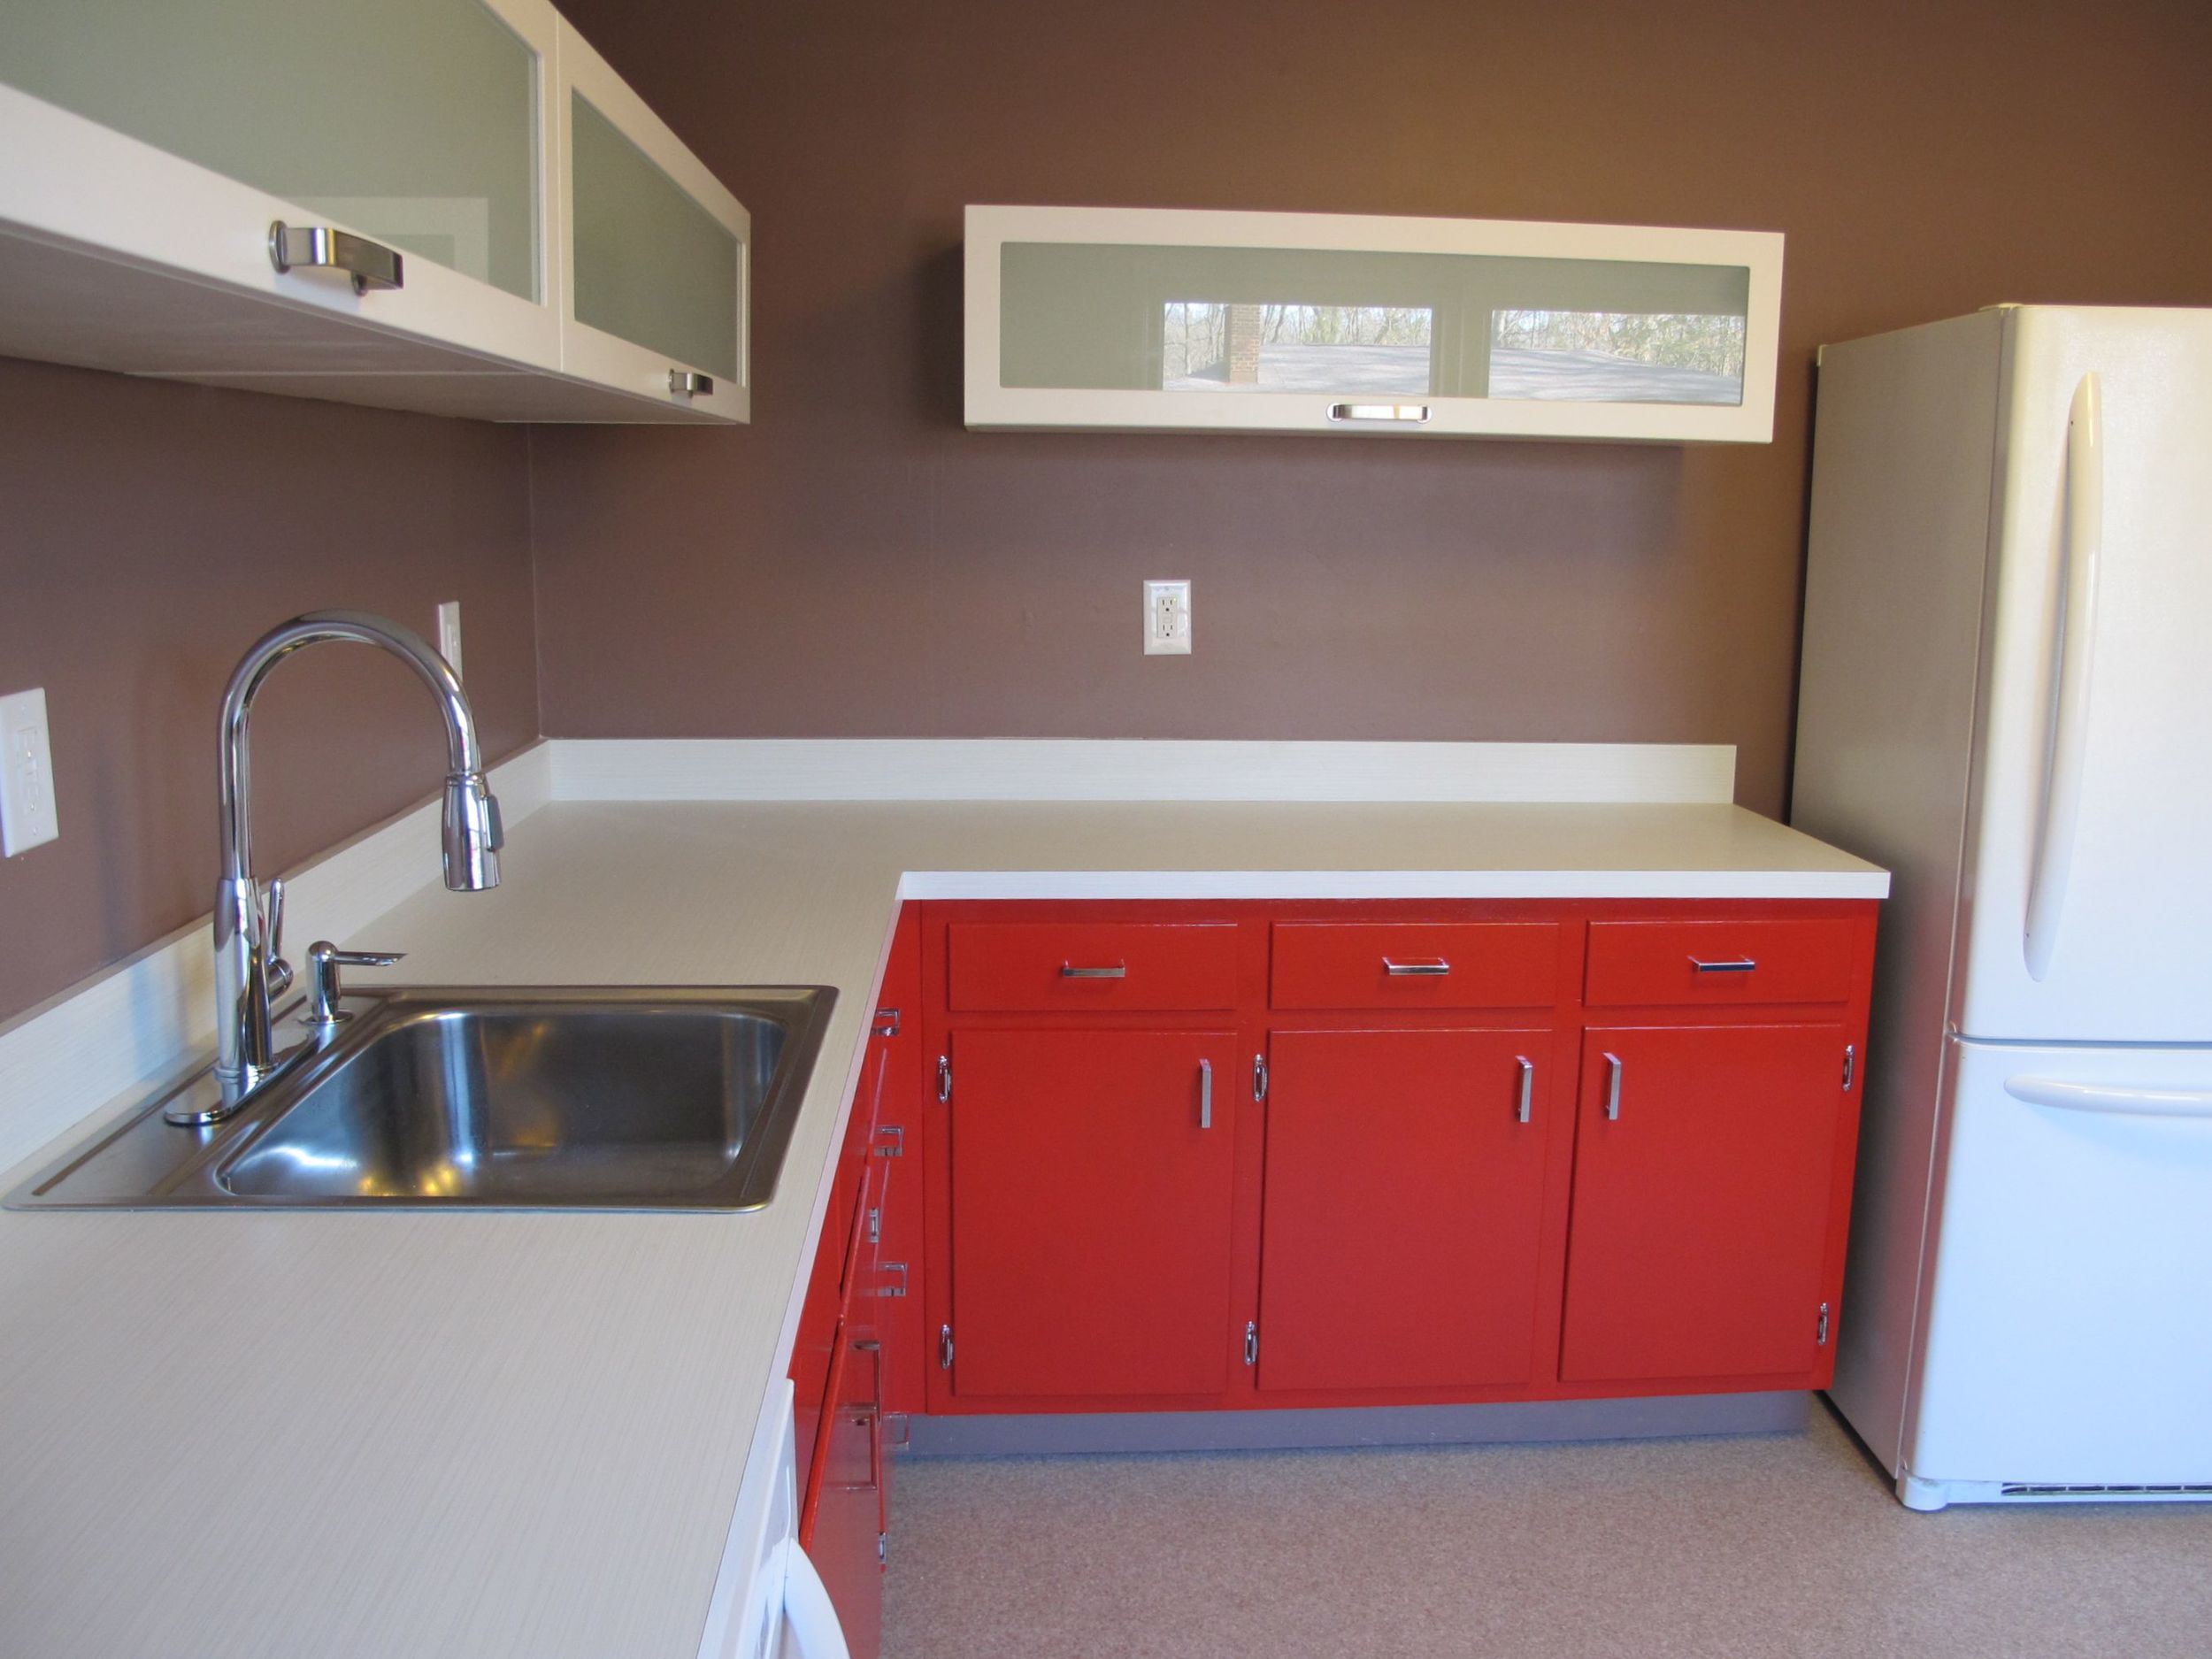 red cabinets.jpg